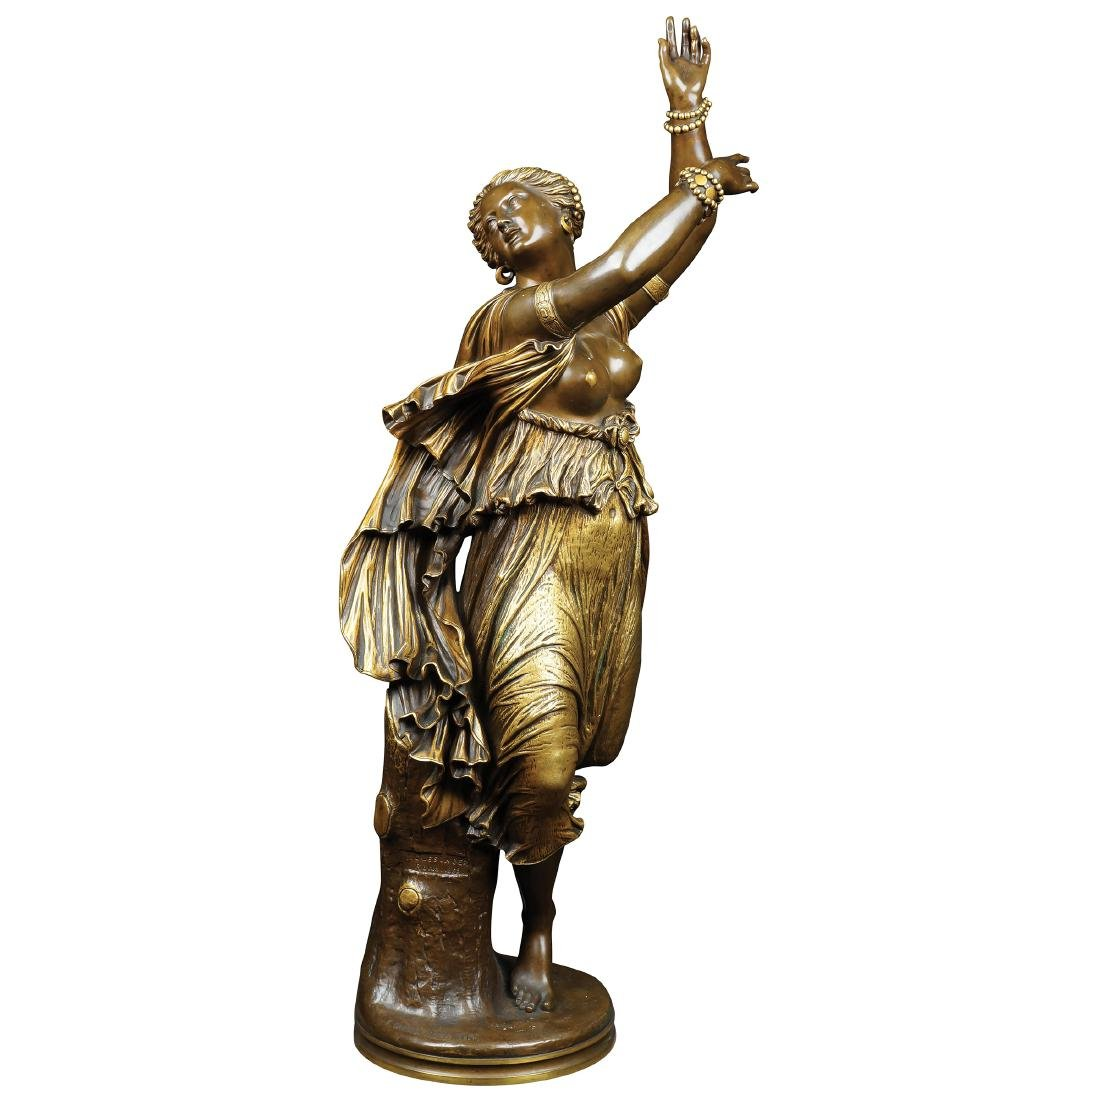 BRONZE SCULPTURE DEPICTING A GYPSY